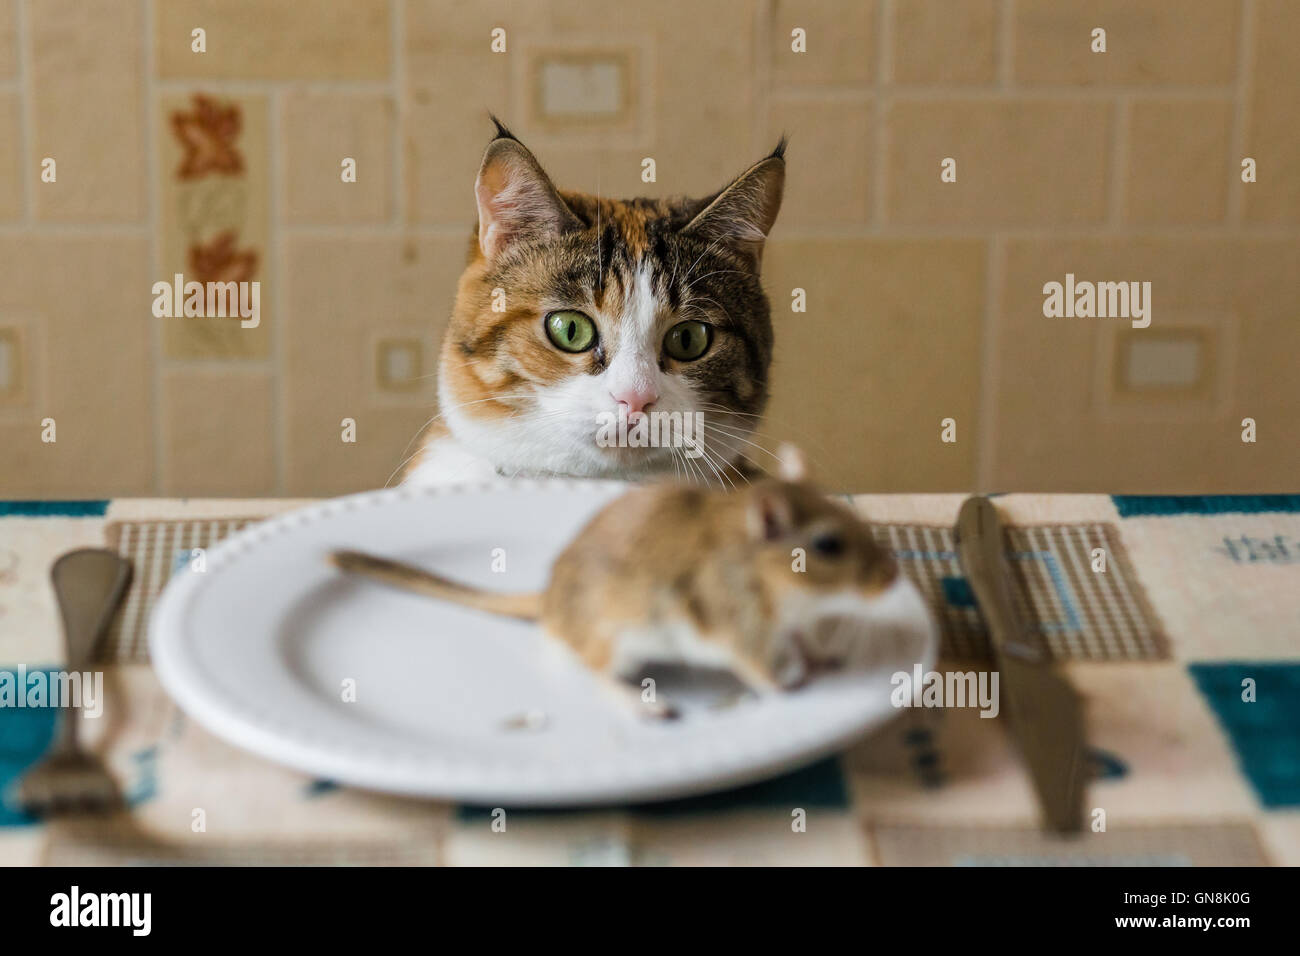 Cat looking to little gerbil mouse on the table. Concept of prey, food, pest. Stock Photo